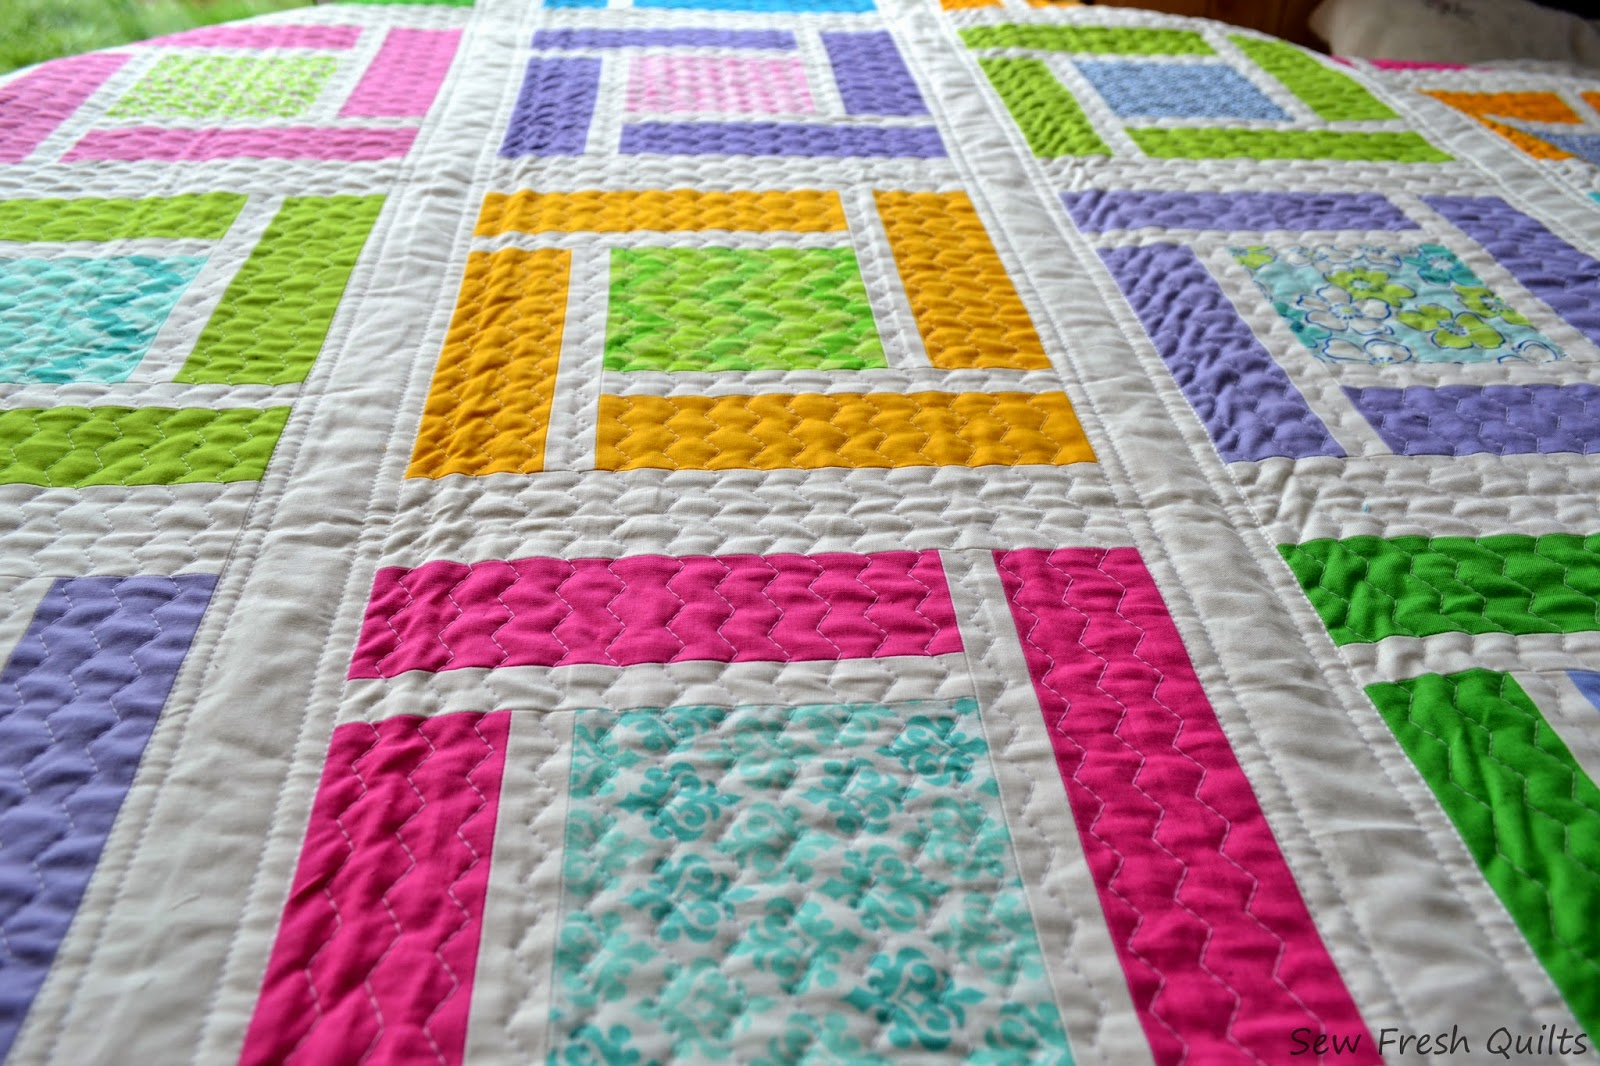 http://sewfreshquilts.blogspot.ca/2014/07/giggles-up-top